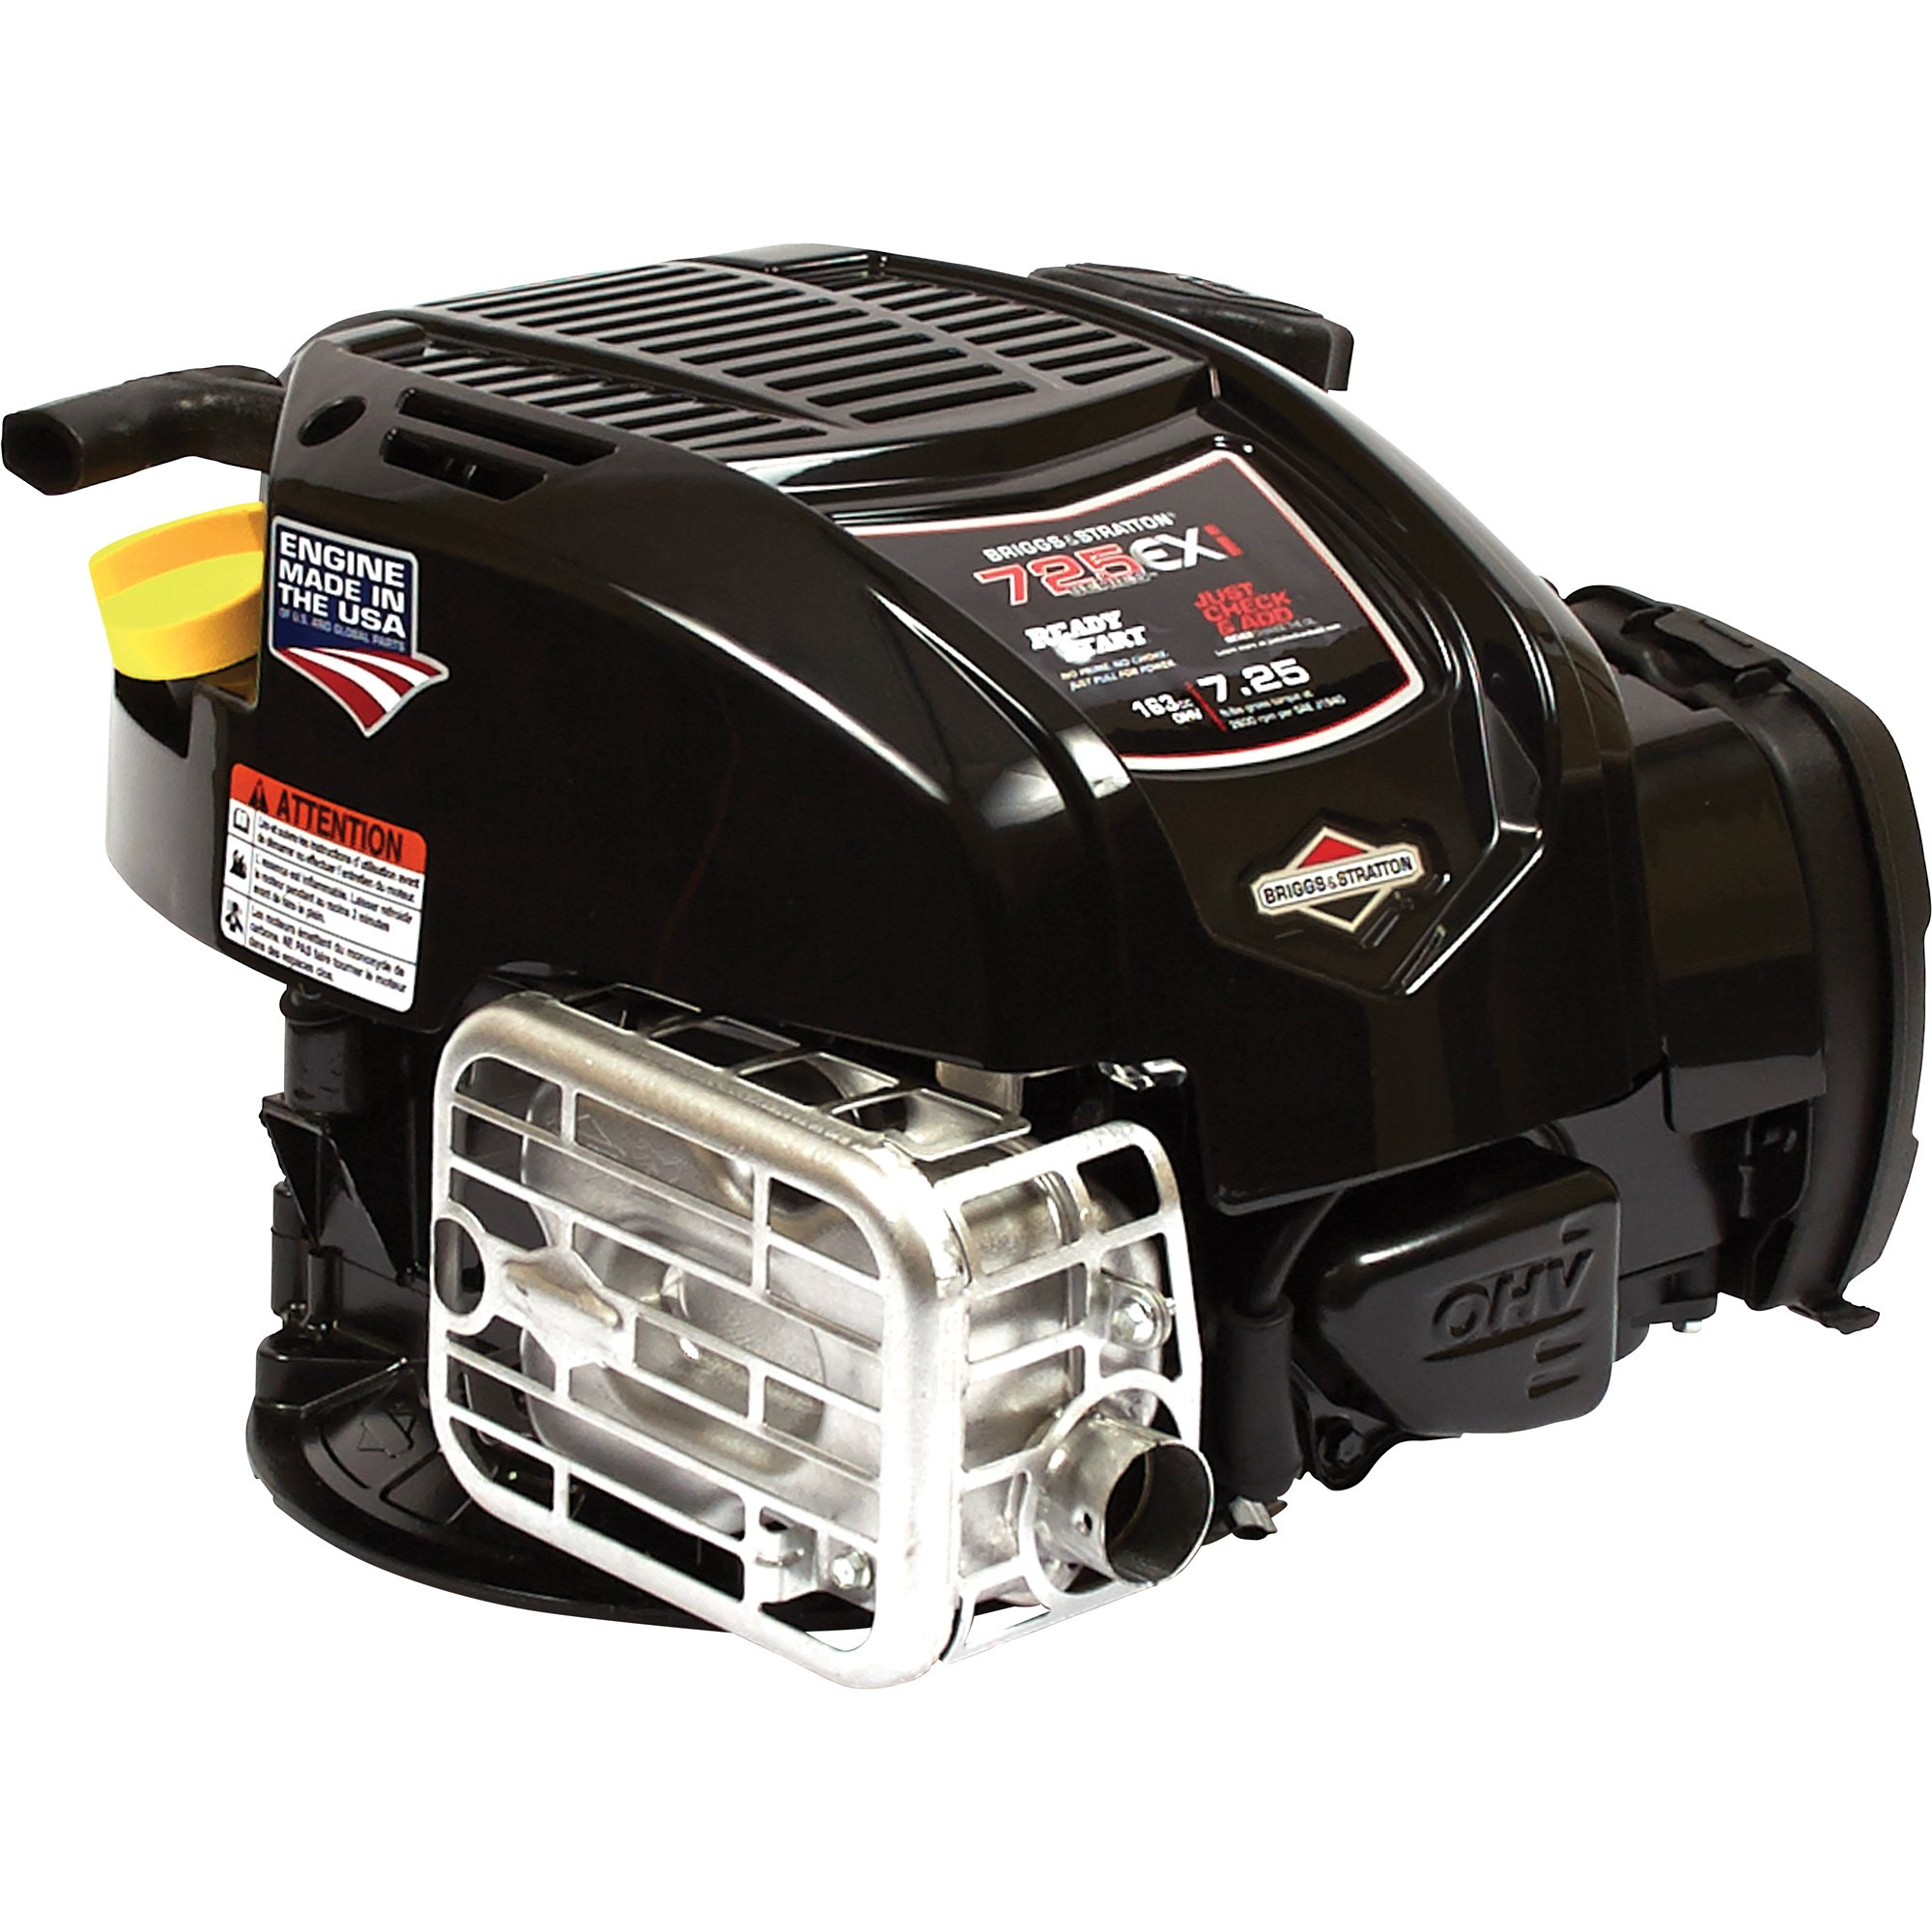 briggs stratton ohv lawn mower engine 163cc 7 8in x. Black Bedroom Furniture Sets. Home Design Ideas